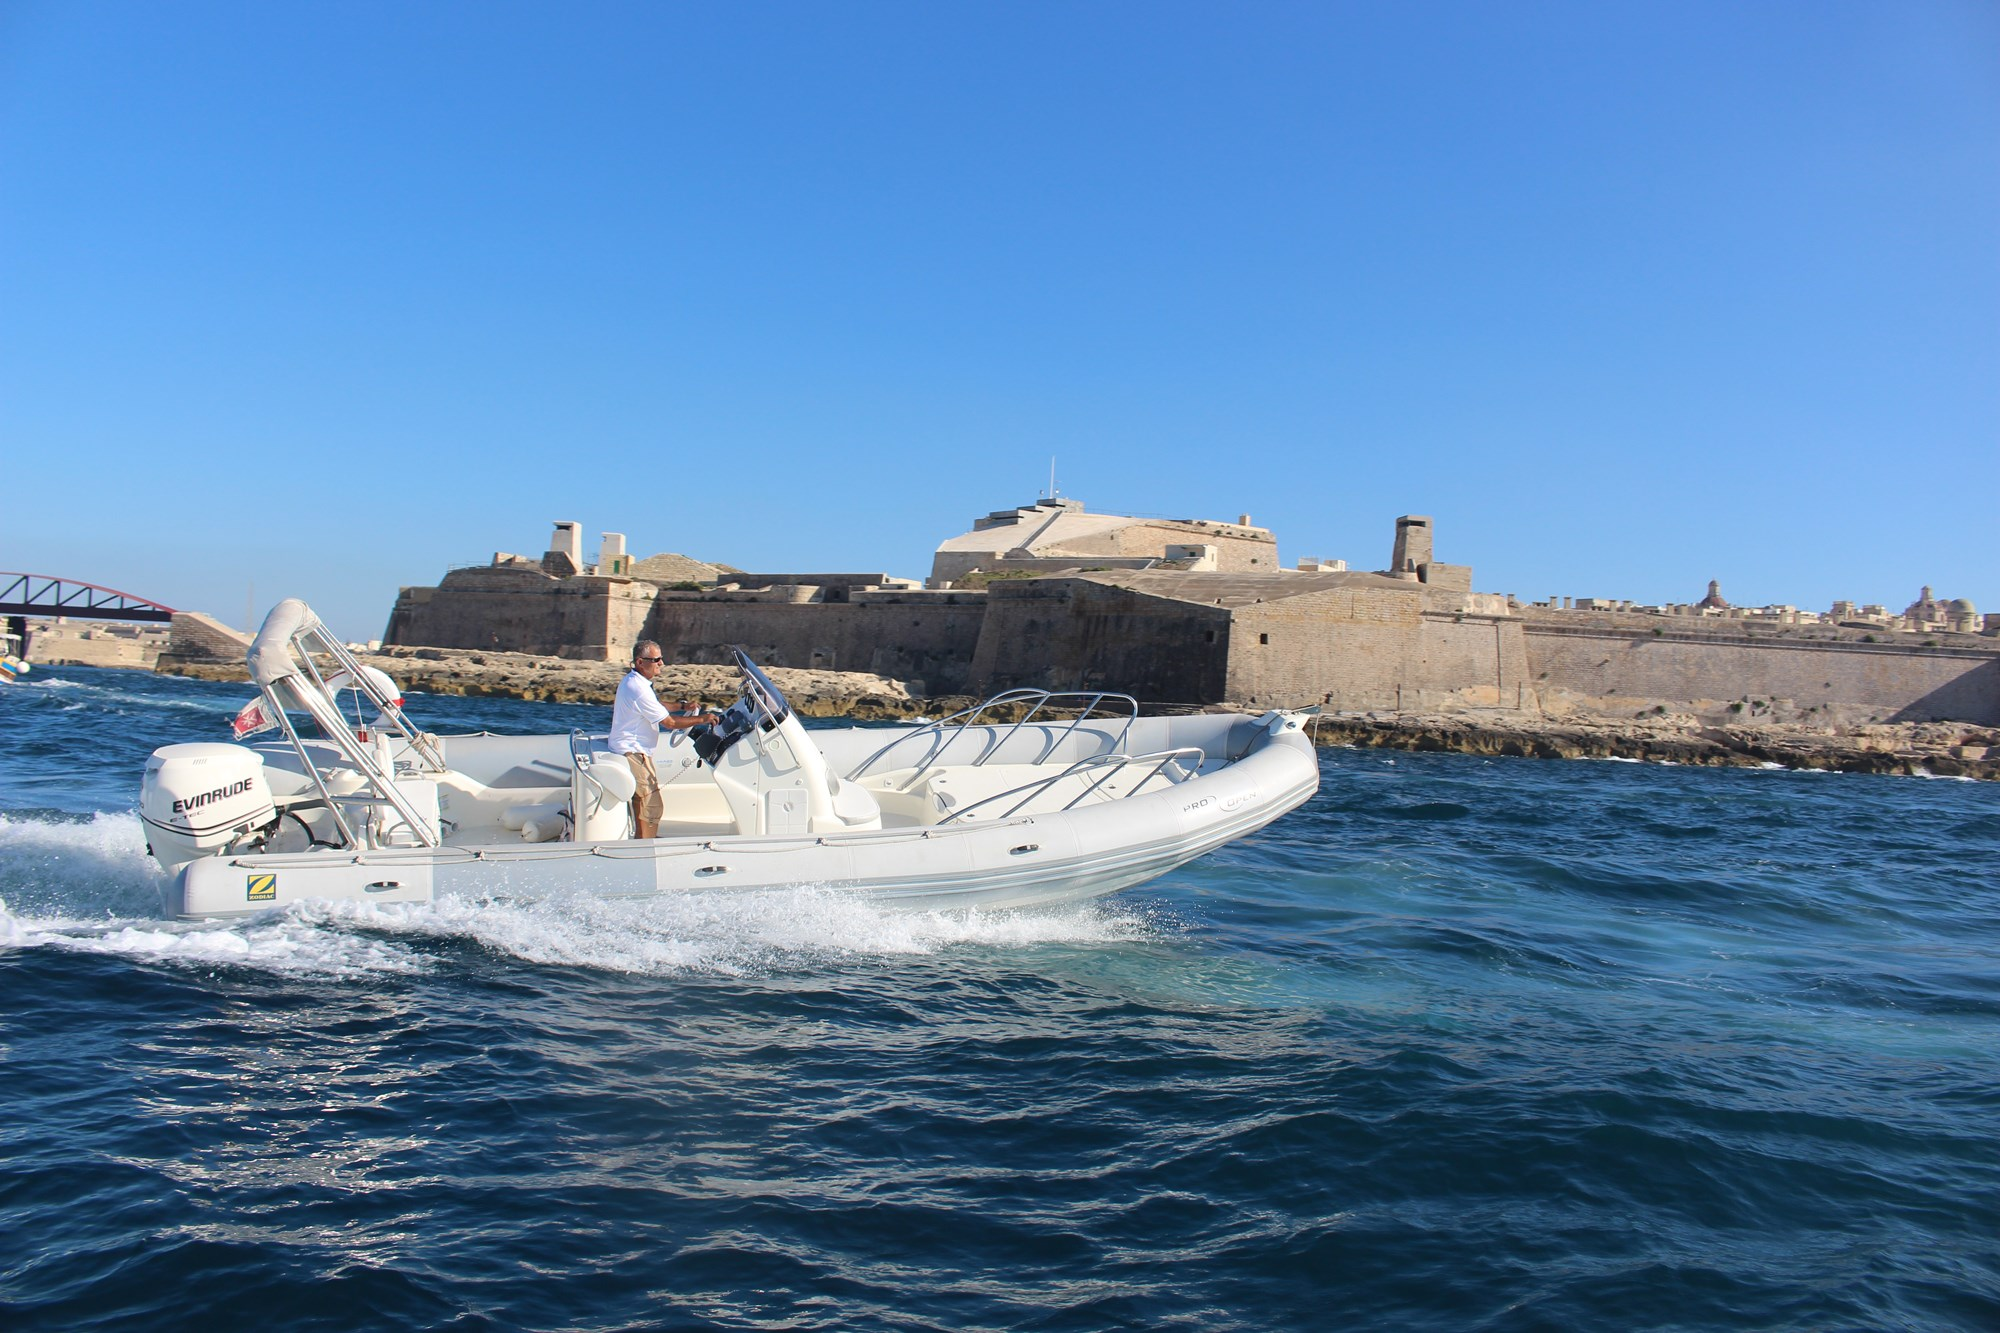 Rent / charter Rib / Dinghy for Boat Parties, Conference & Incentive / Meetings / Corporate, Full Day Tour, Half Day Tour, Harbour Cruise, Private Charter & Team Building Activities in Malta & Gozo - Zodiac Pro Open 8.5